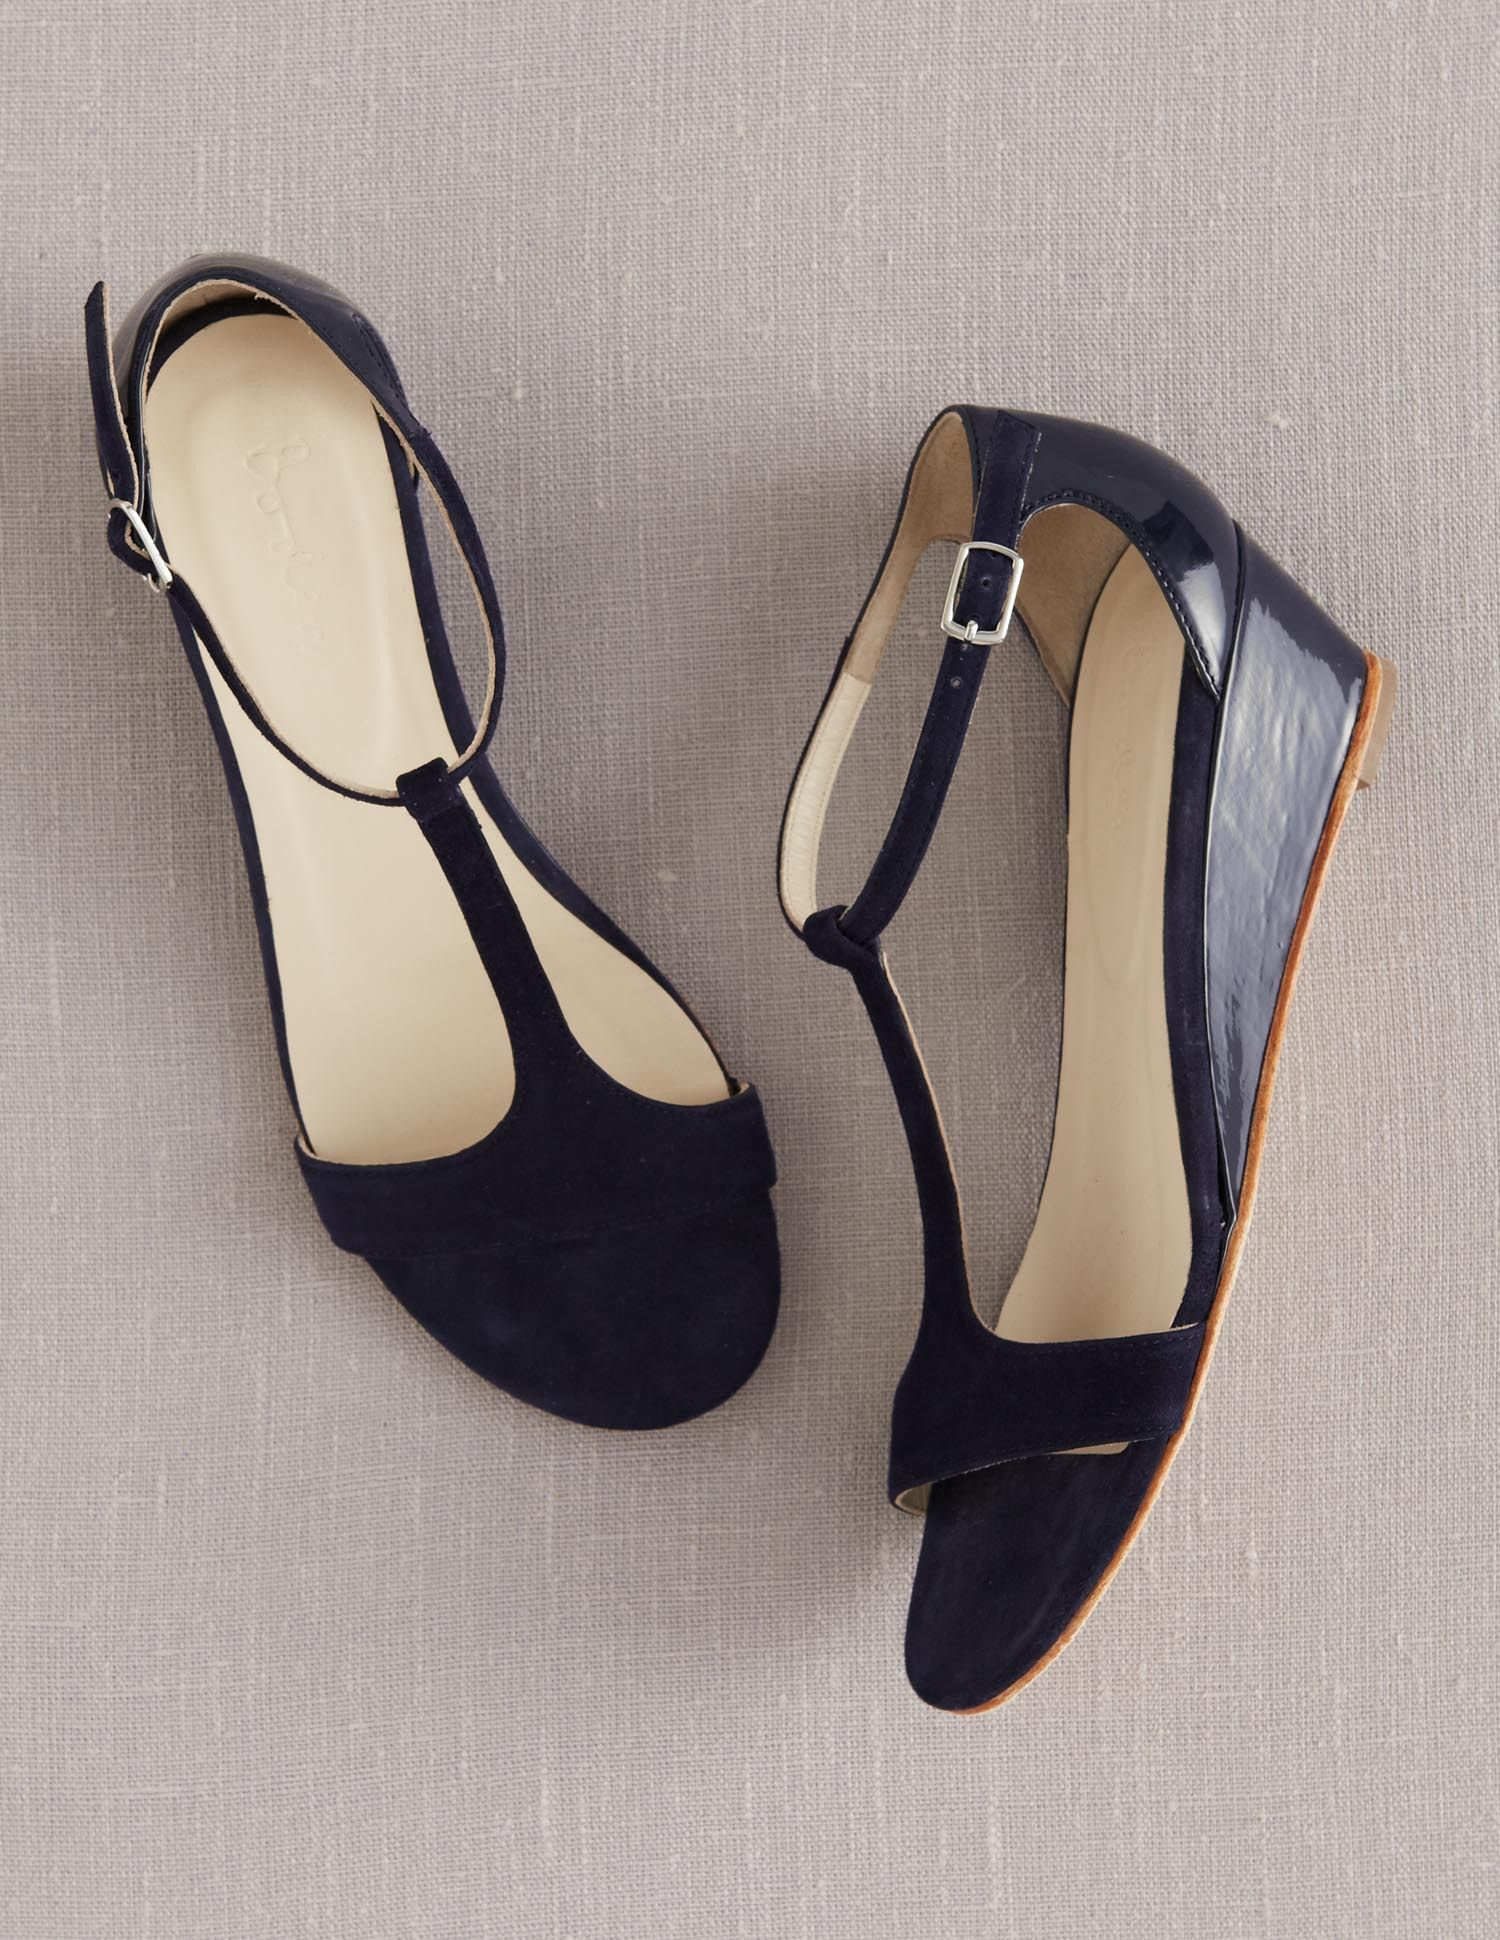 Womens sandals wedges - Details About Boden Women S Brand New T Bar Demi Wedges Shoes Sandals Navy Blue Patent Leather